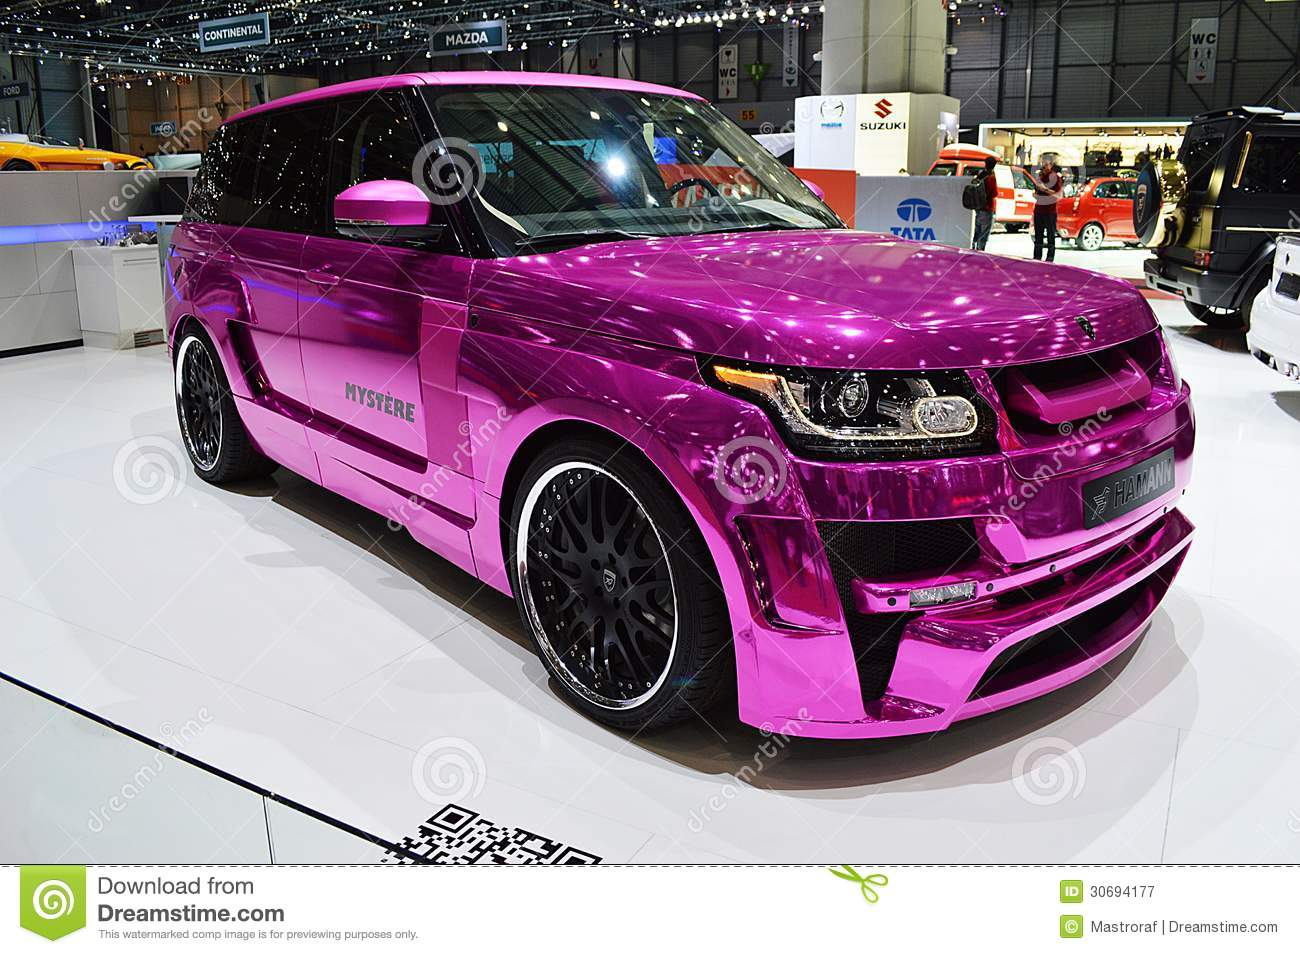 Range Rover Best Luxury Cars: Pink Range Rover Geneva 2013 Editorial Photography